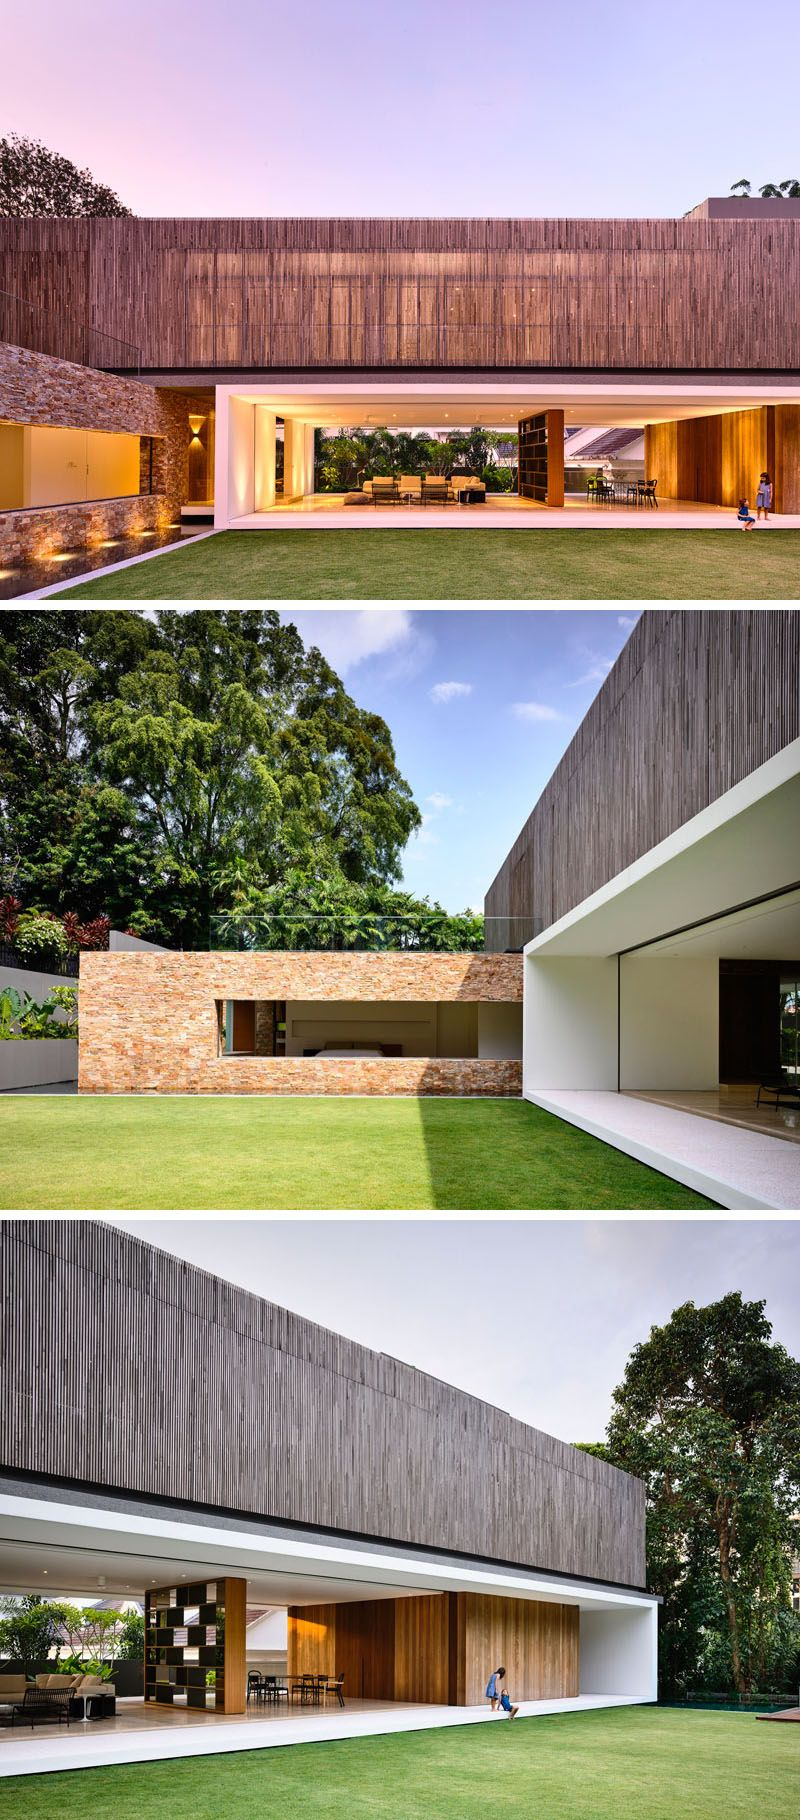 The Main Living Level Of This Home Completely Opens Up To The Grassy  Backyard, And